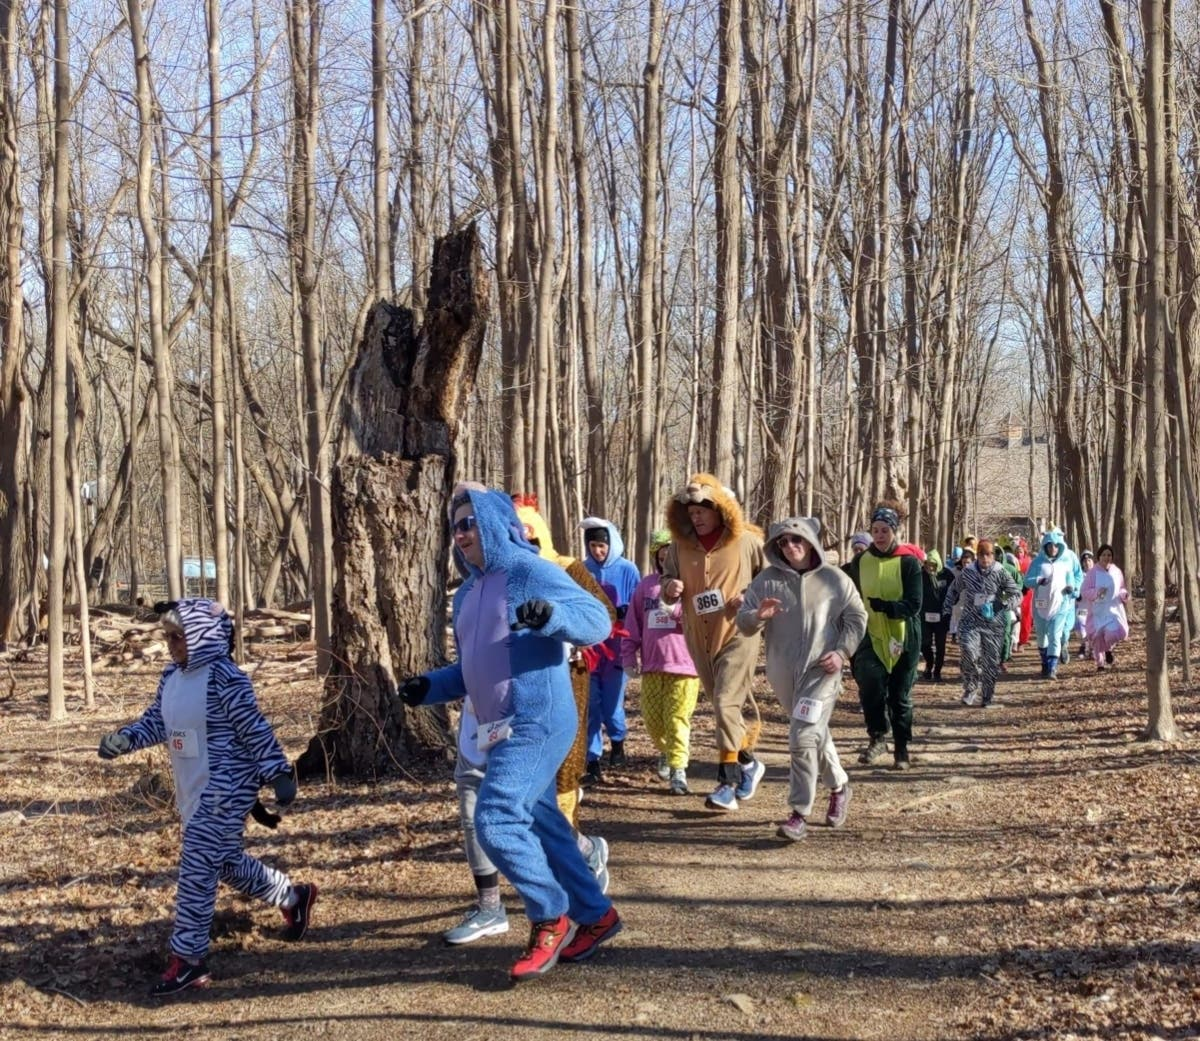 Runners Brave The Cold In Onesies At Mahwah 5K